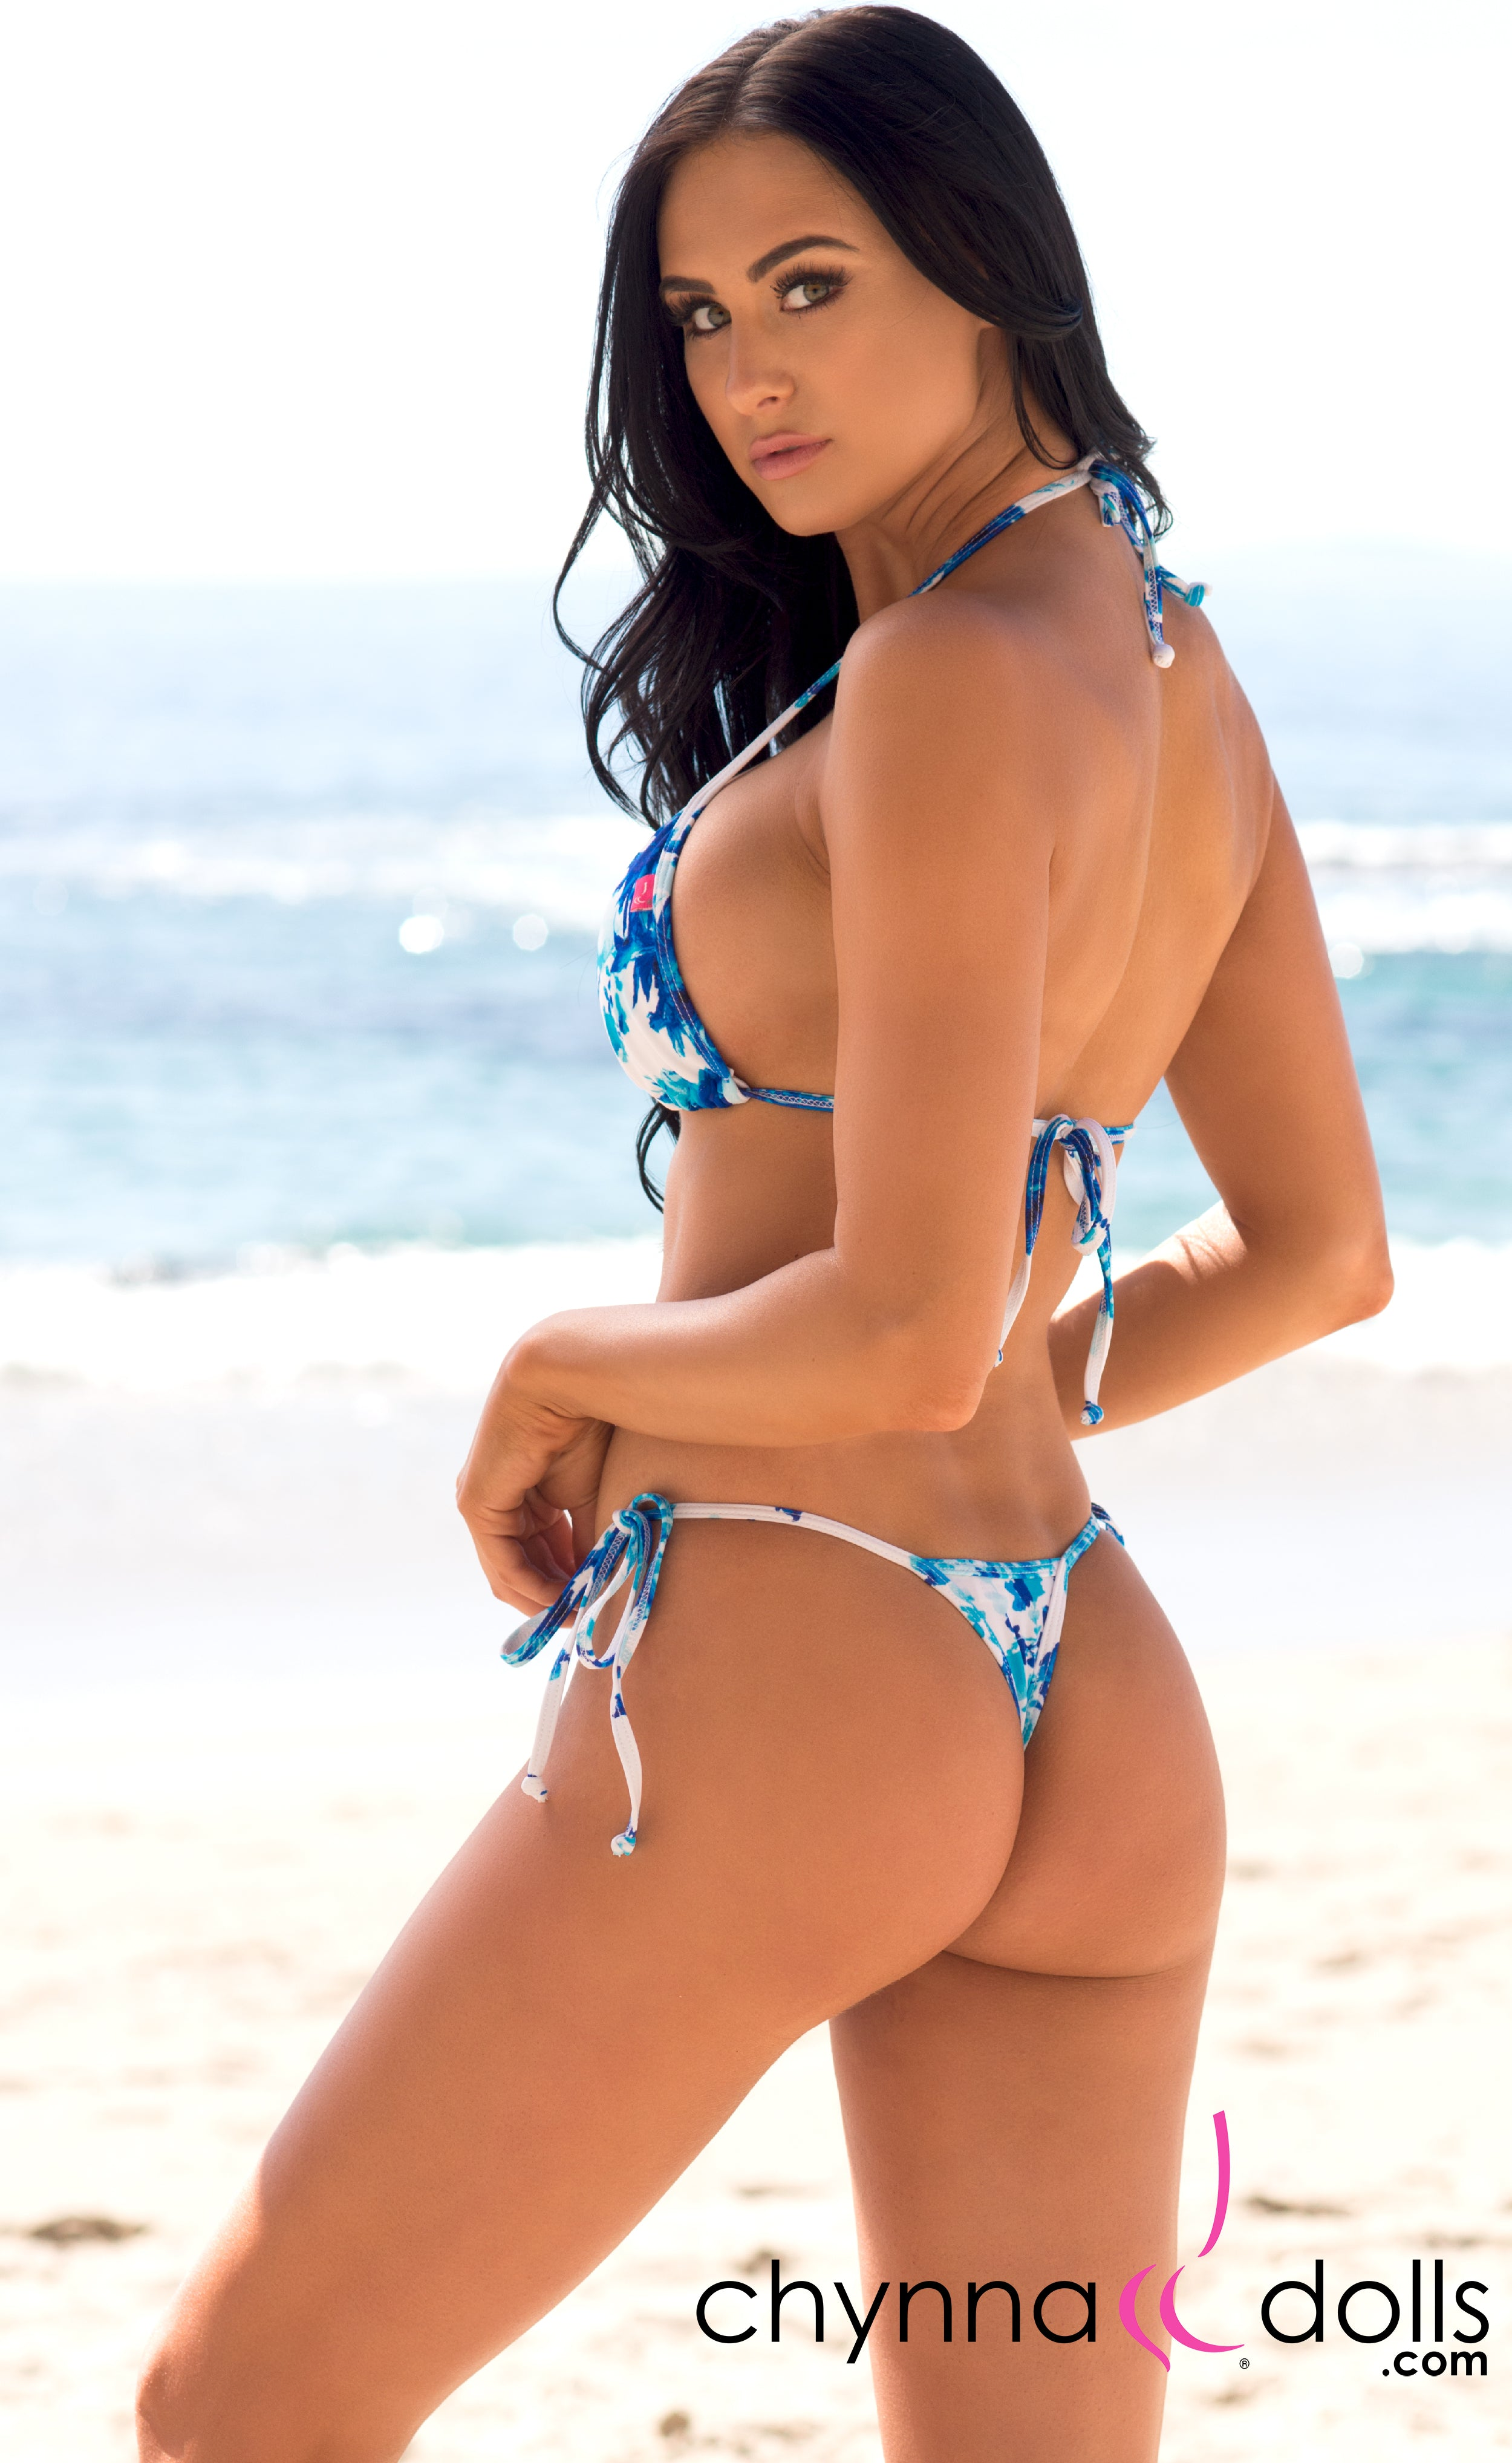 Rio: T-Back Thong Bikini in Blue Flowers on White - Chynna Dolls Swimwear